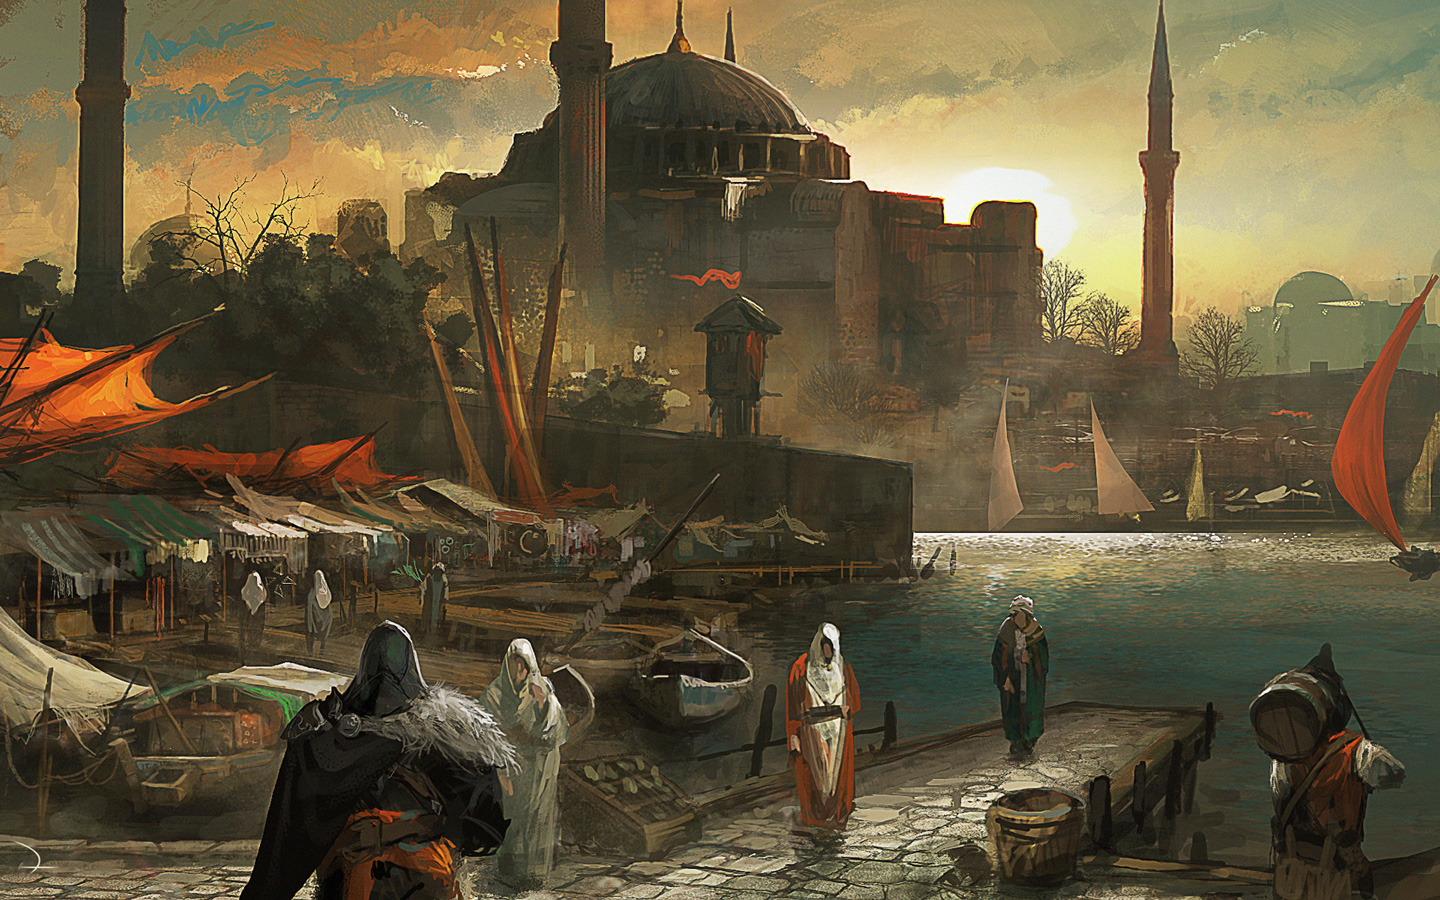 Free Assassin's Creed: Revelations Wallpaper in 1440x900